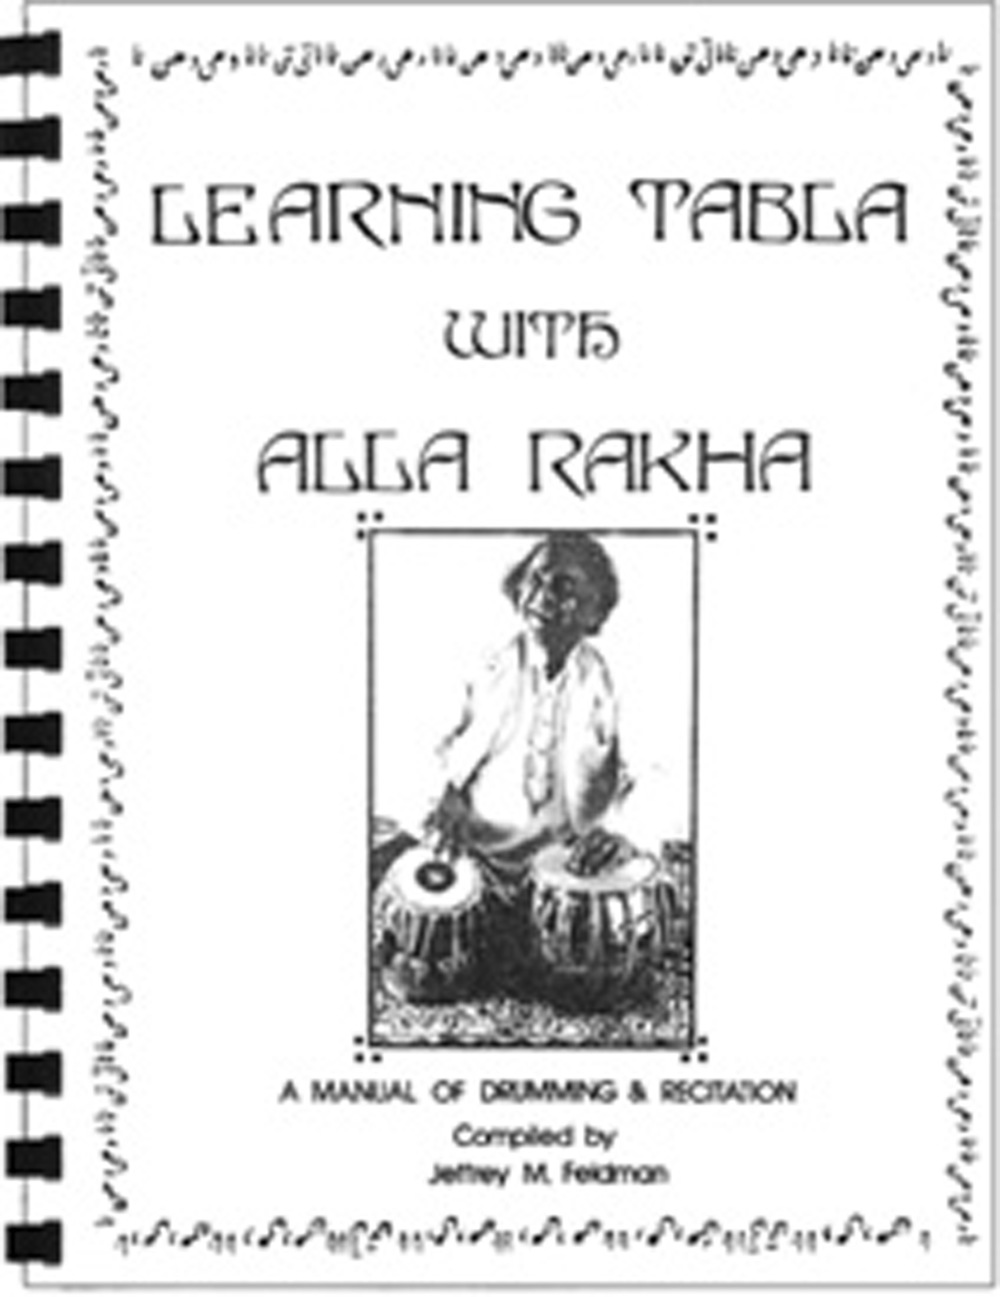 Learning Tabla with Alla Rakha   is a step-by-step introduction to a single tabla solo in the Punjab style as taught by Alla Rakha, the tabla maestro best known for his many tours and recordings with Ravi Shankar. Purchase includes   free access to online videos  ...  -more-